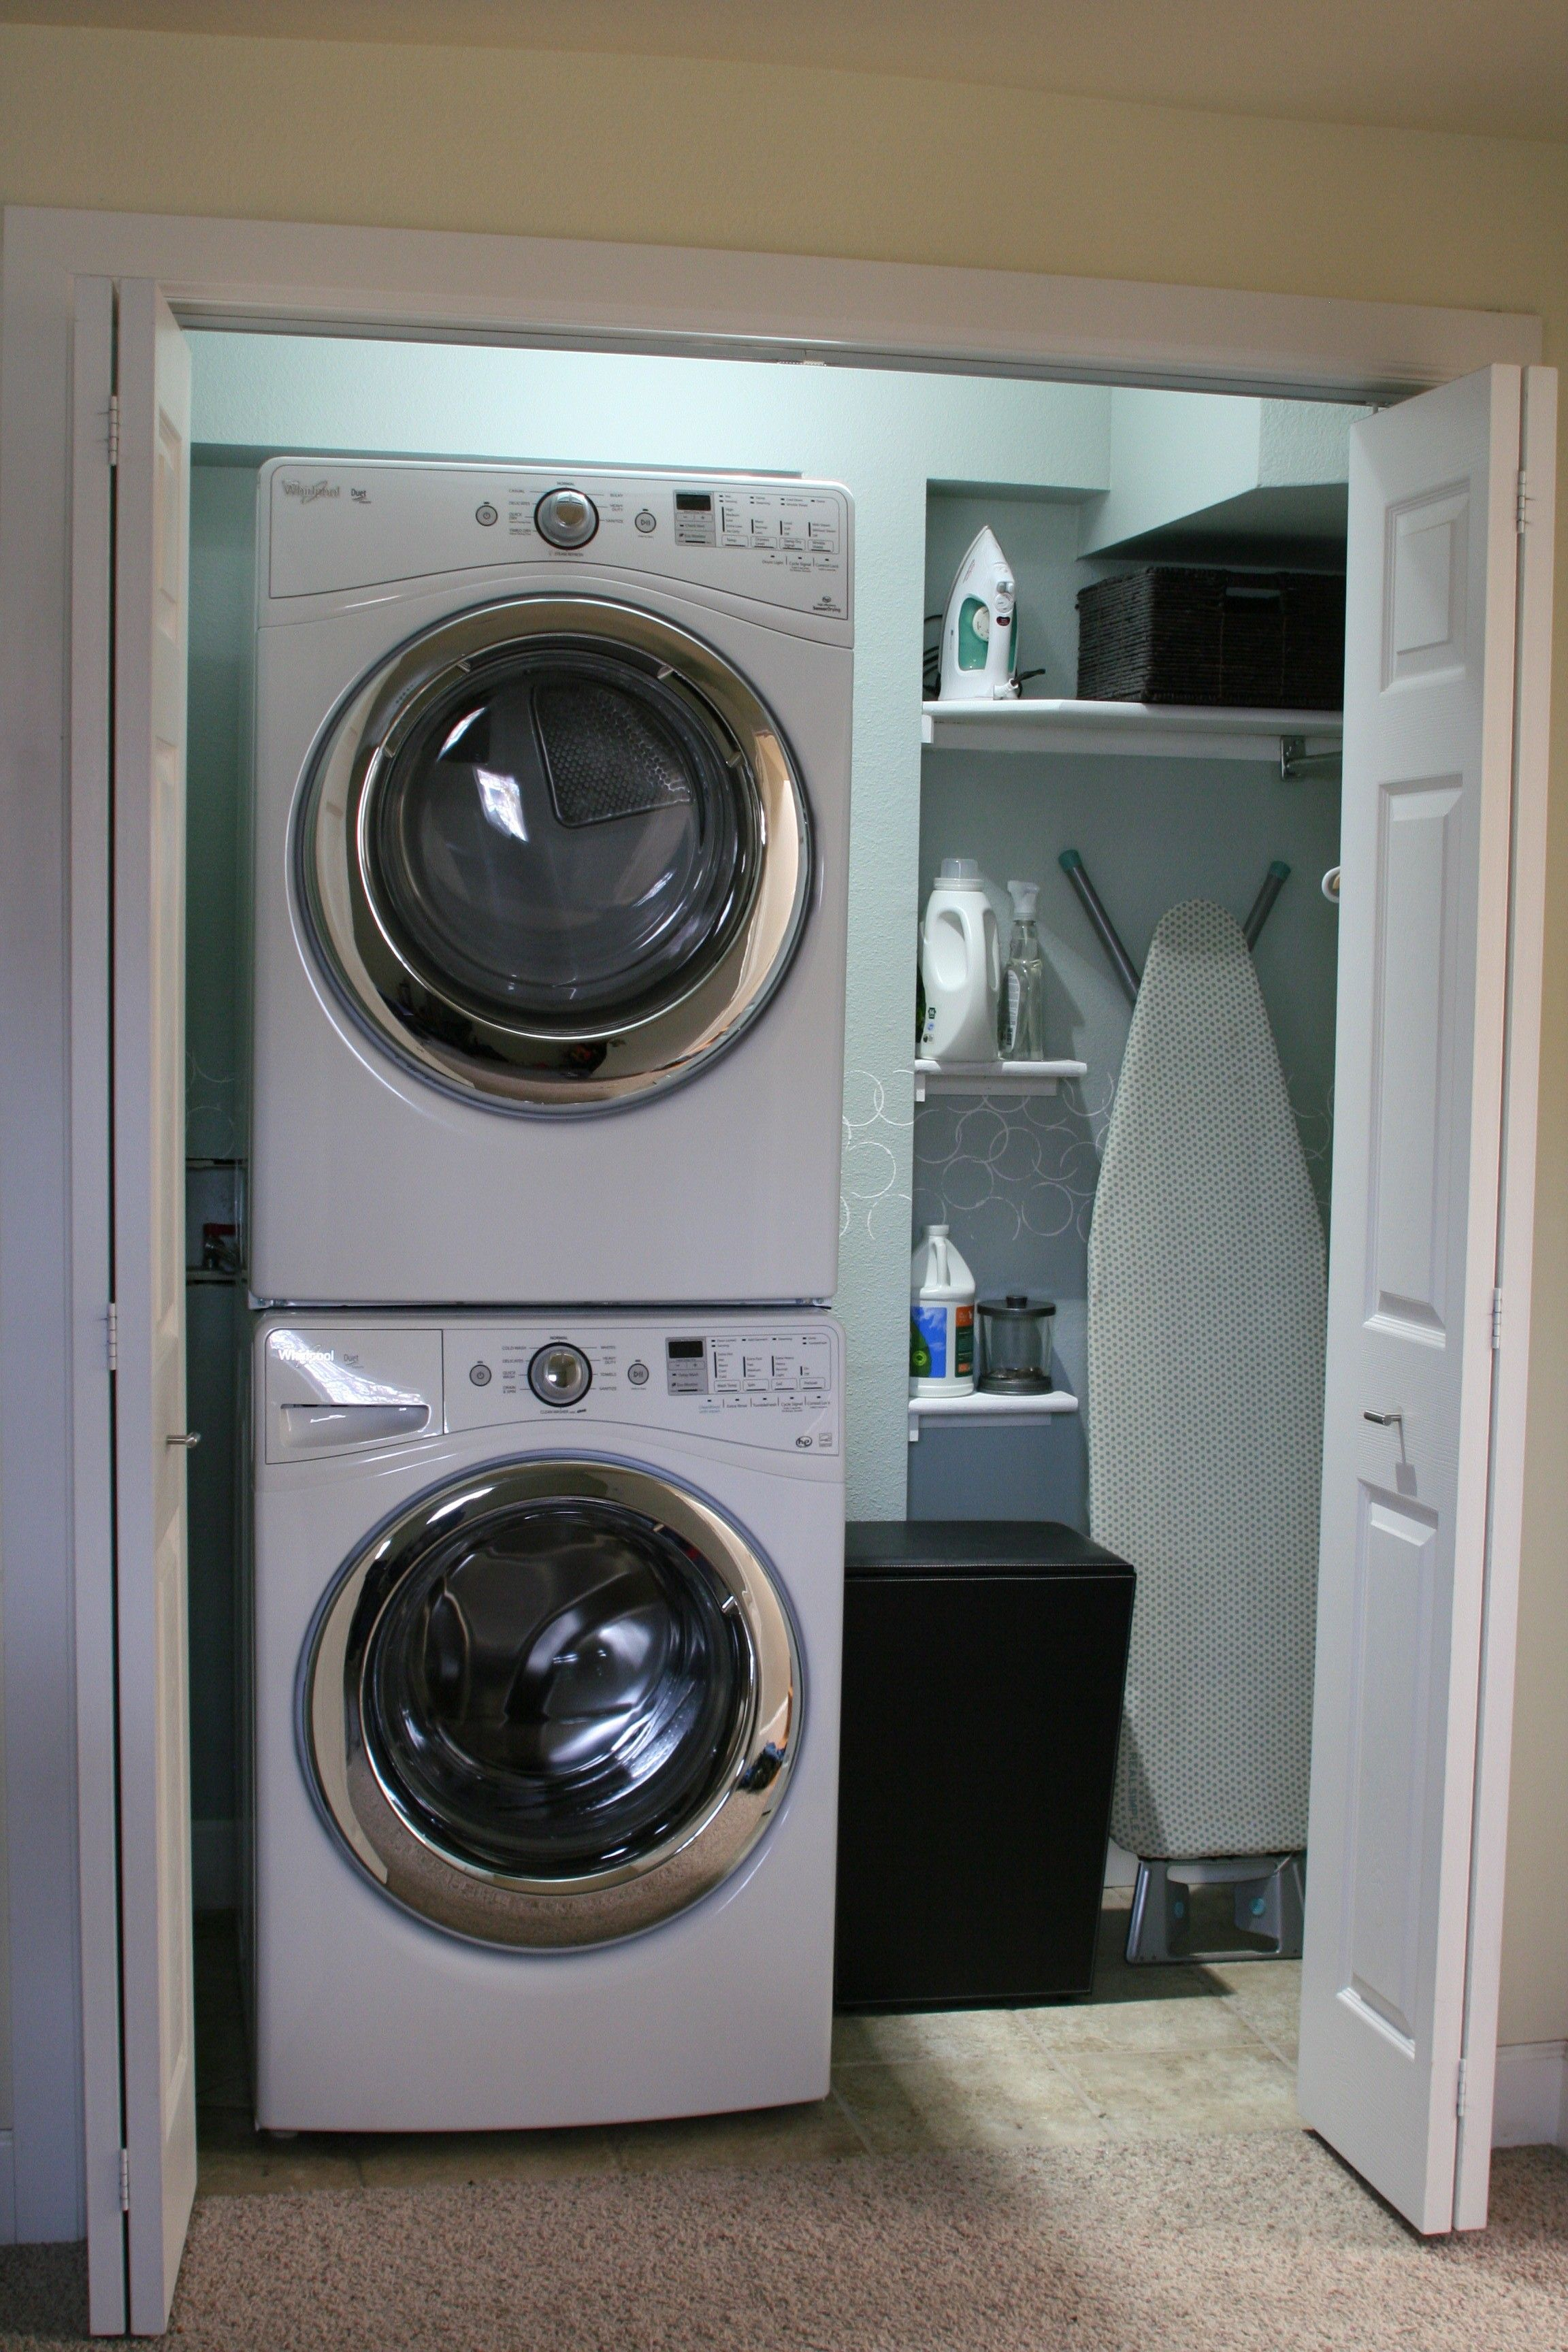 Awesome white blue wood stainless unique design ikea laundry room